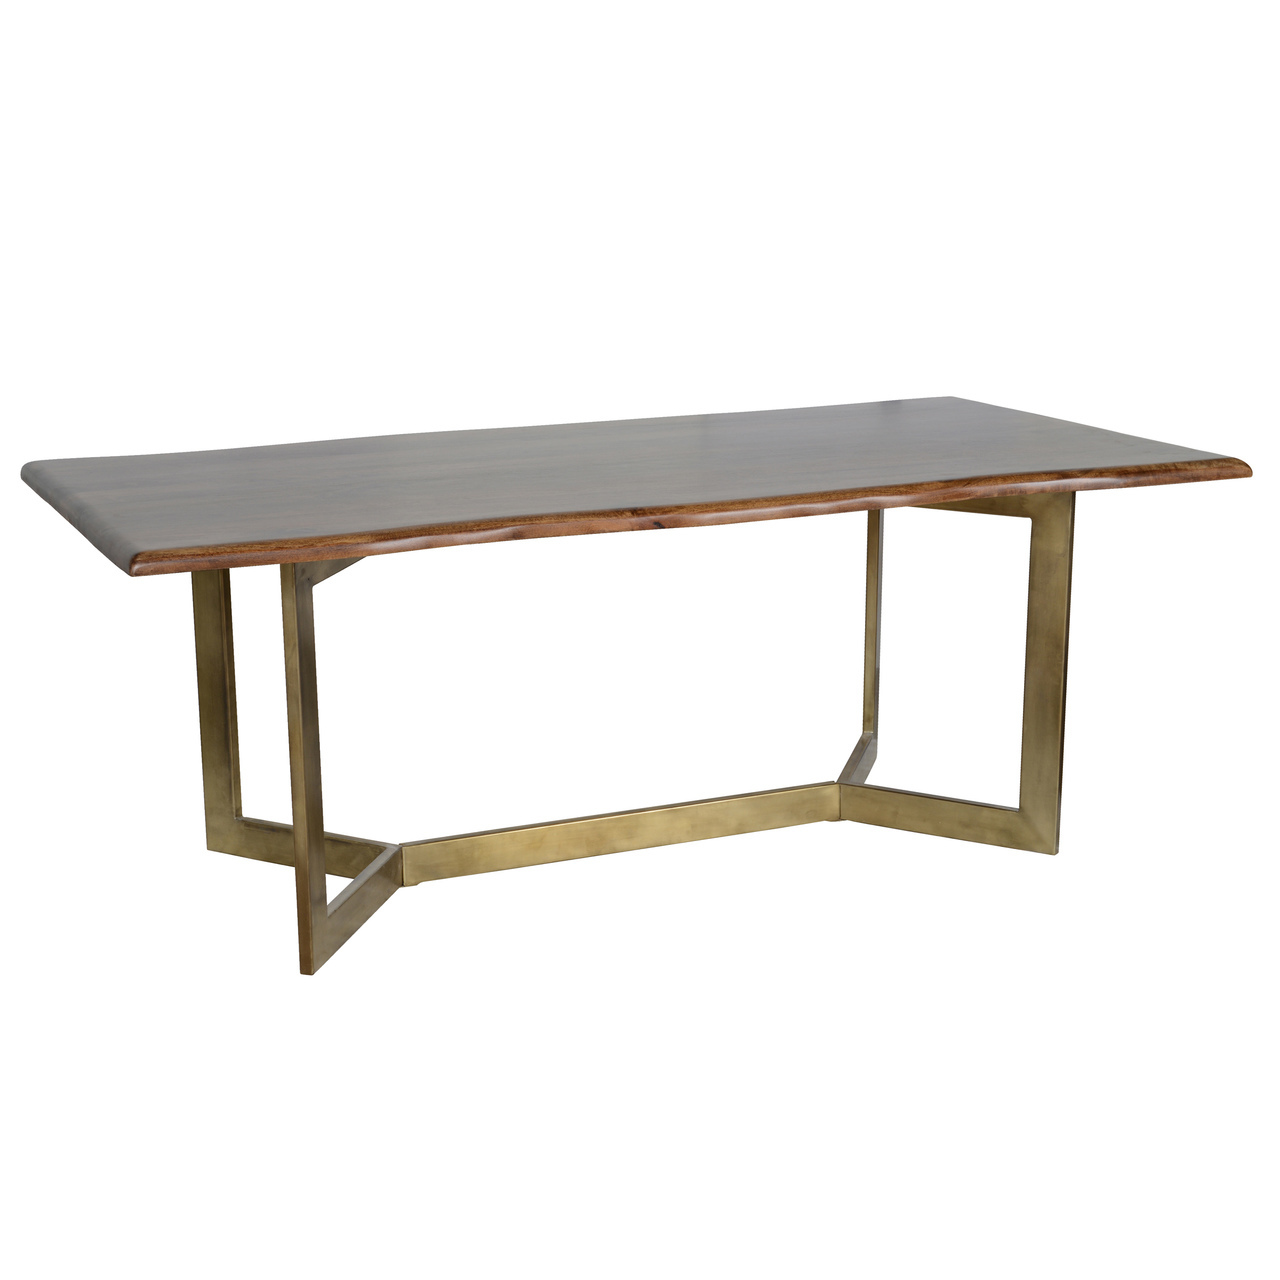 the kade dining table starfine furniture mattress serving accent ikea wall cabinets bedroom living laminate floor beading bird affordable reclaimed wood and metal end west elm